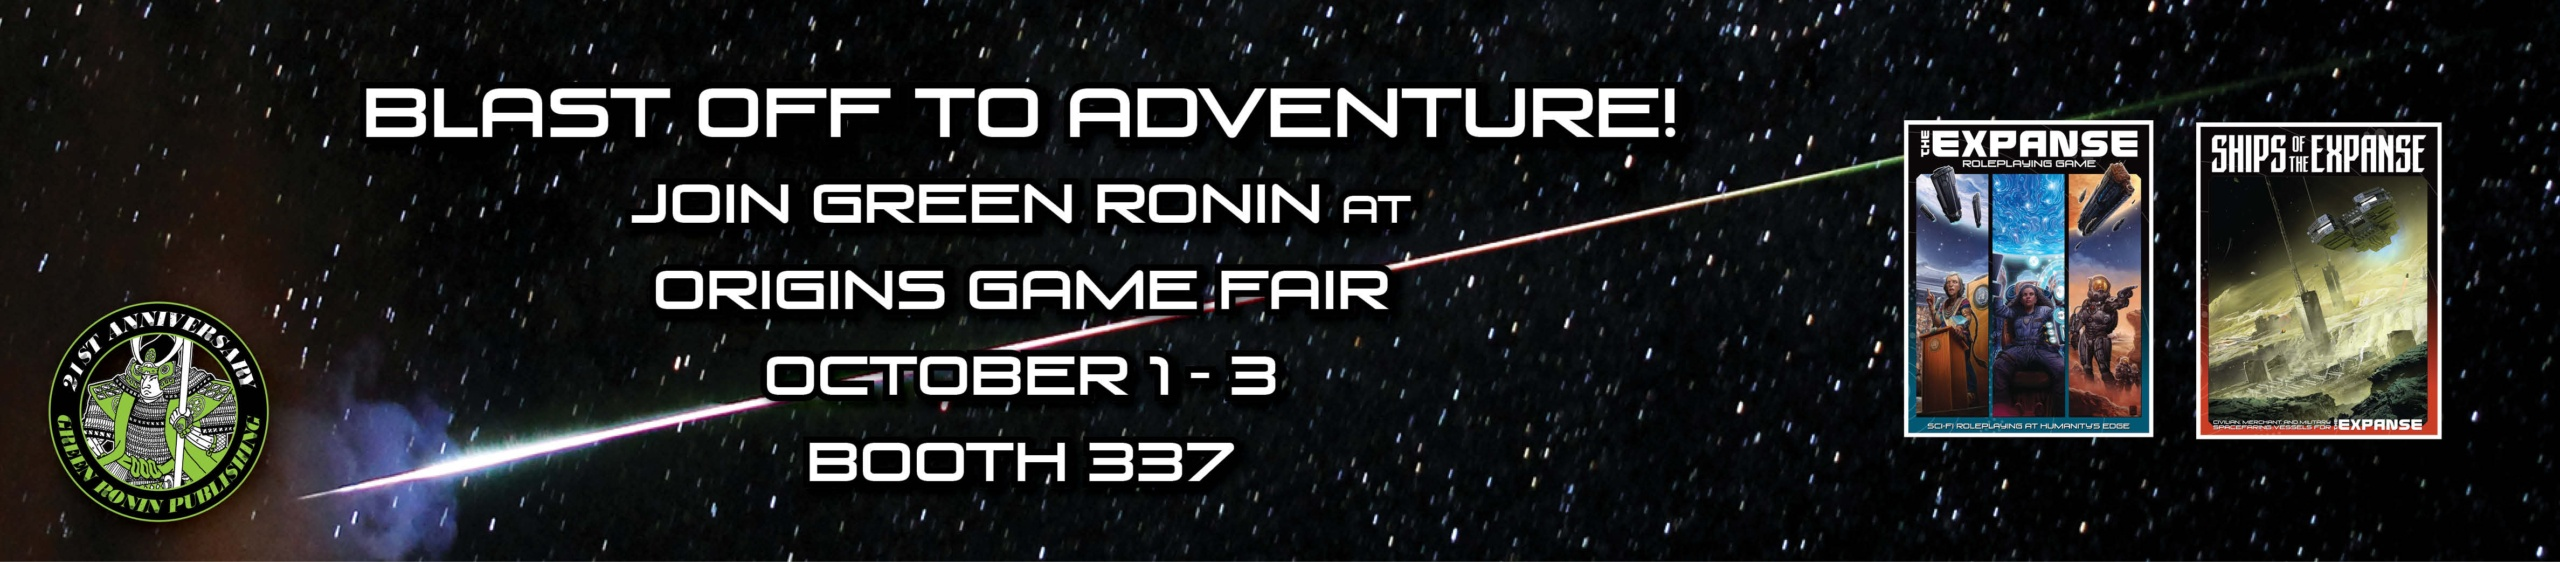 Green Ronin at Origins Game Fair: Come see us in booth 337!